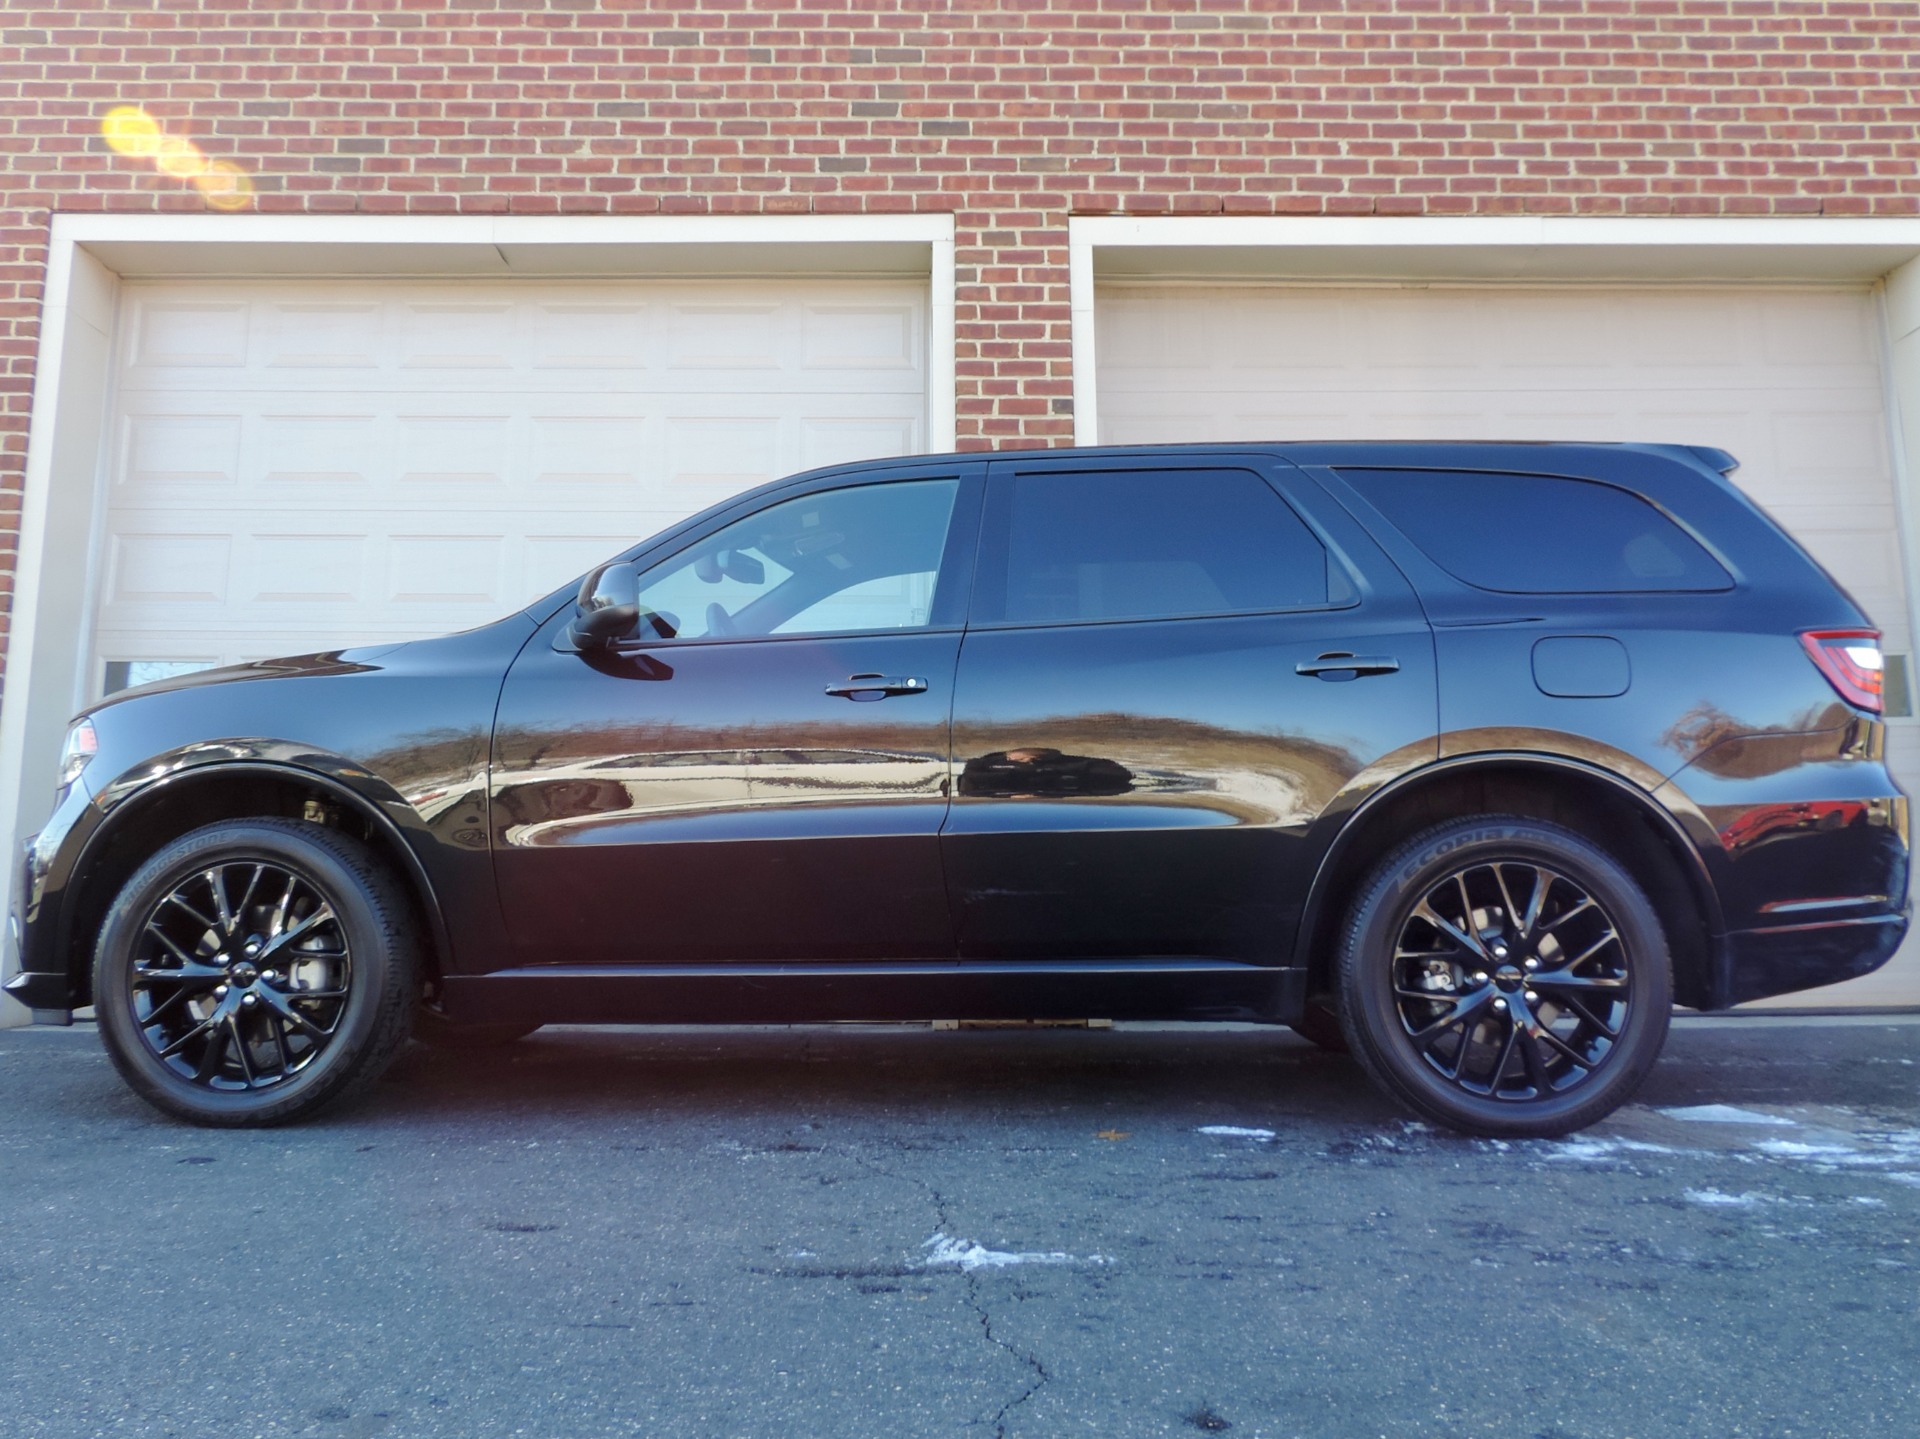 Dodge Dealers In Nj >> 2016 Dodge Durango SXT Plus Stock # 336720 for sale near